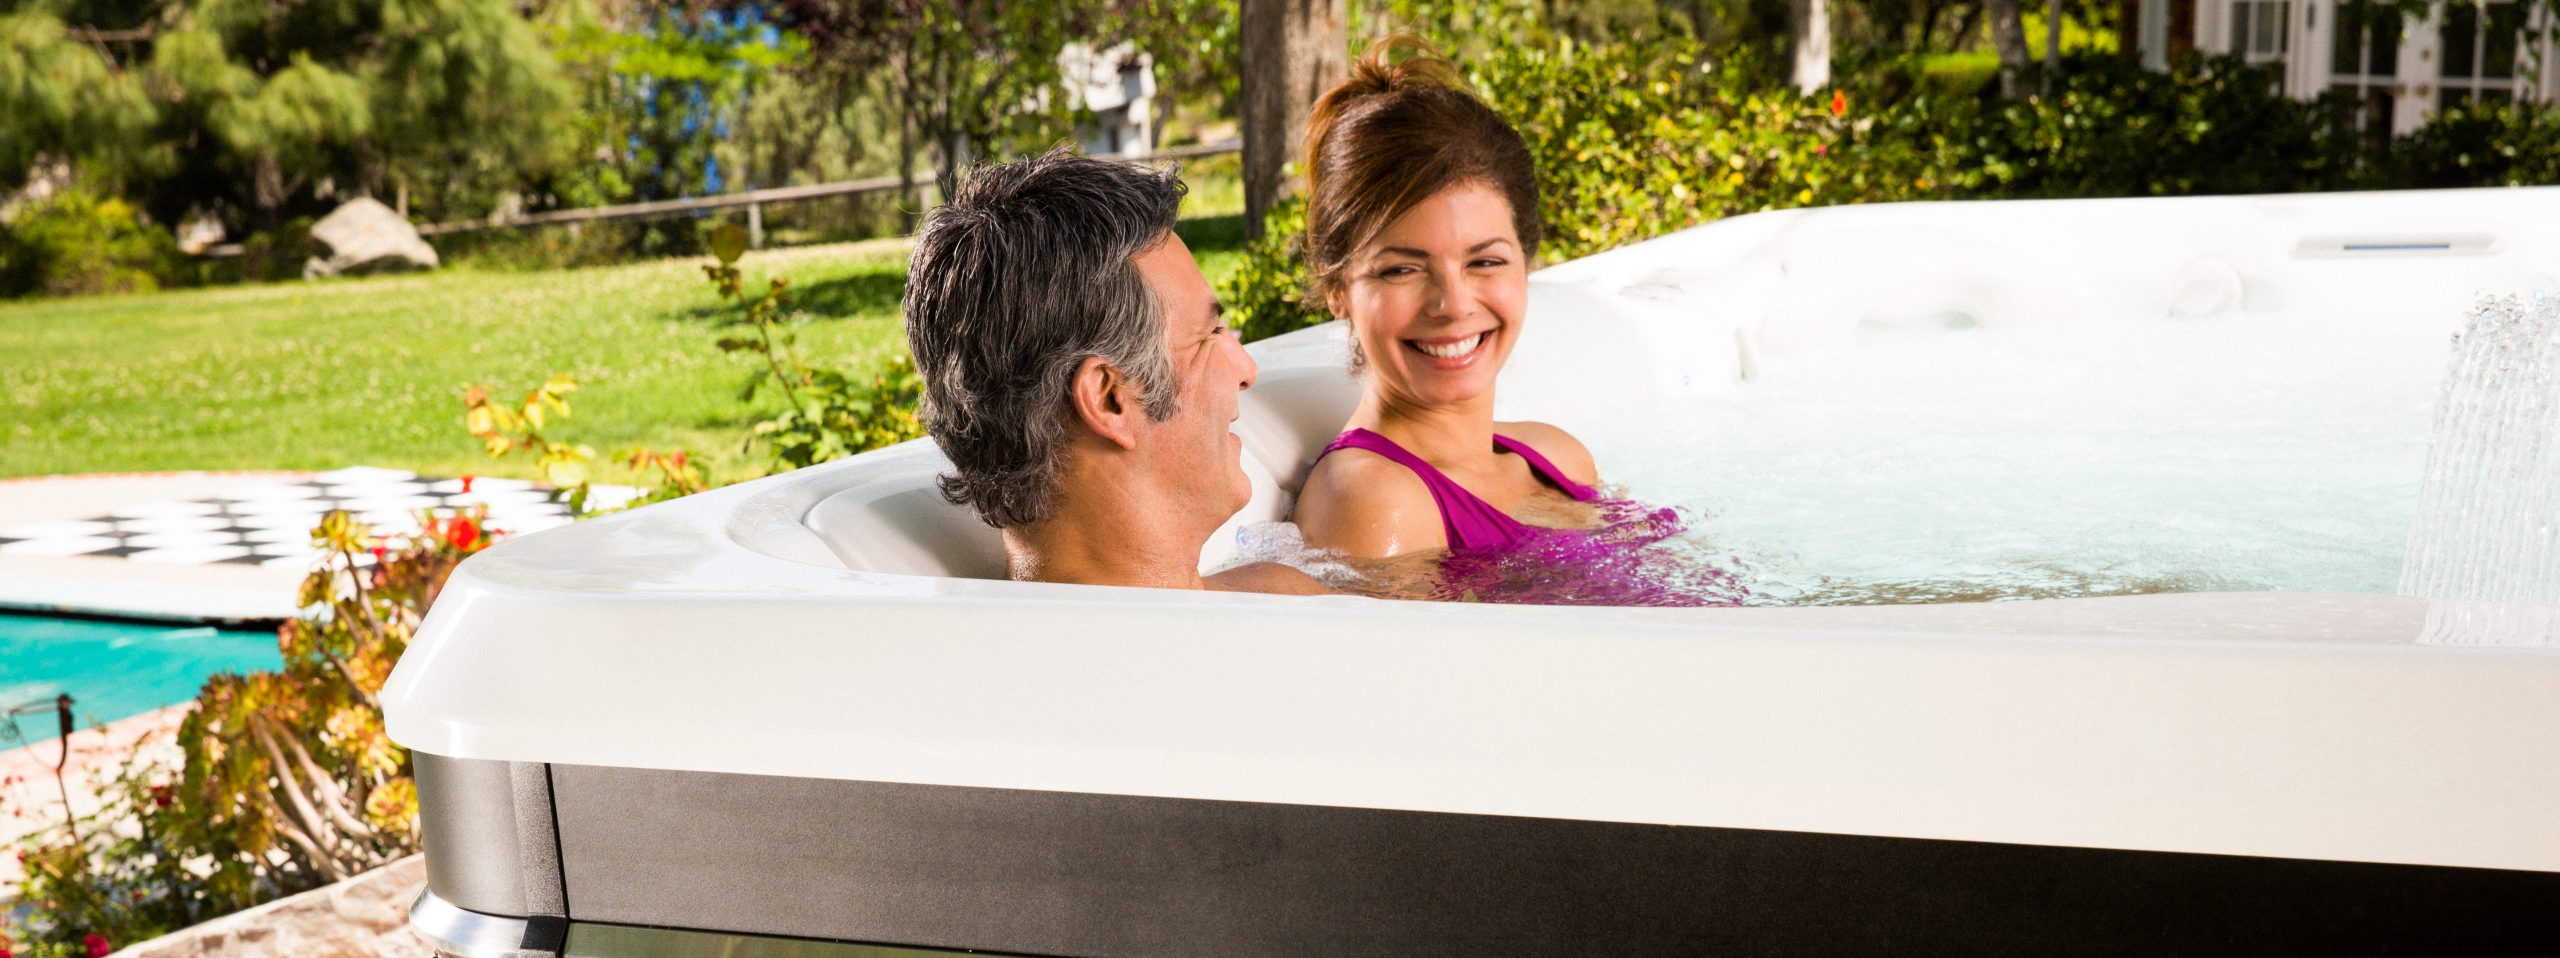 Soak in the Backyard Spa to Relieve Post Workout Pain, Hot Tubs Sioux Center